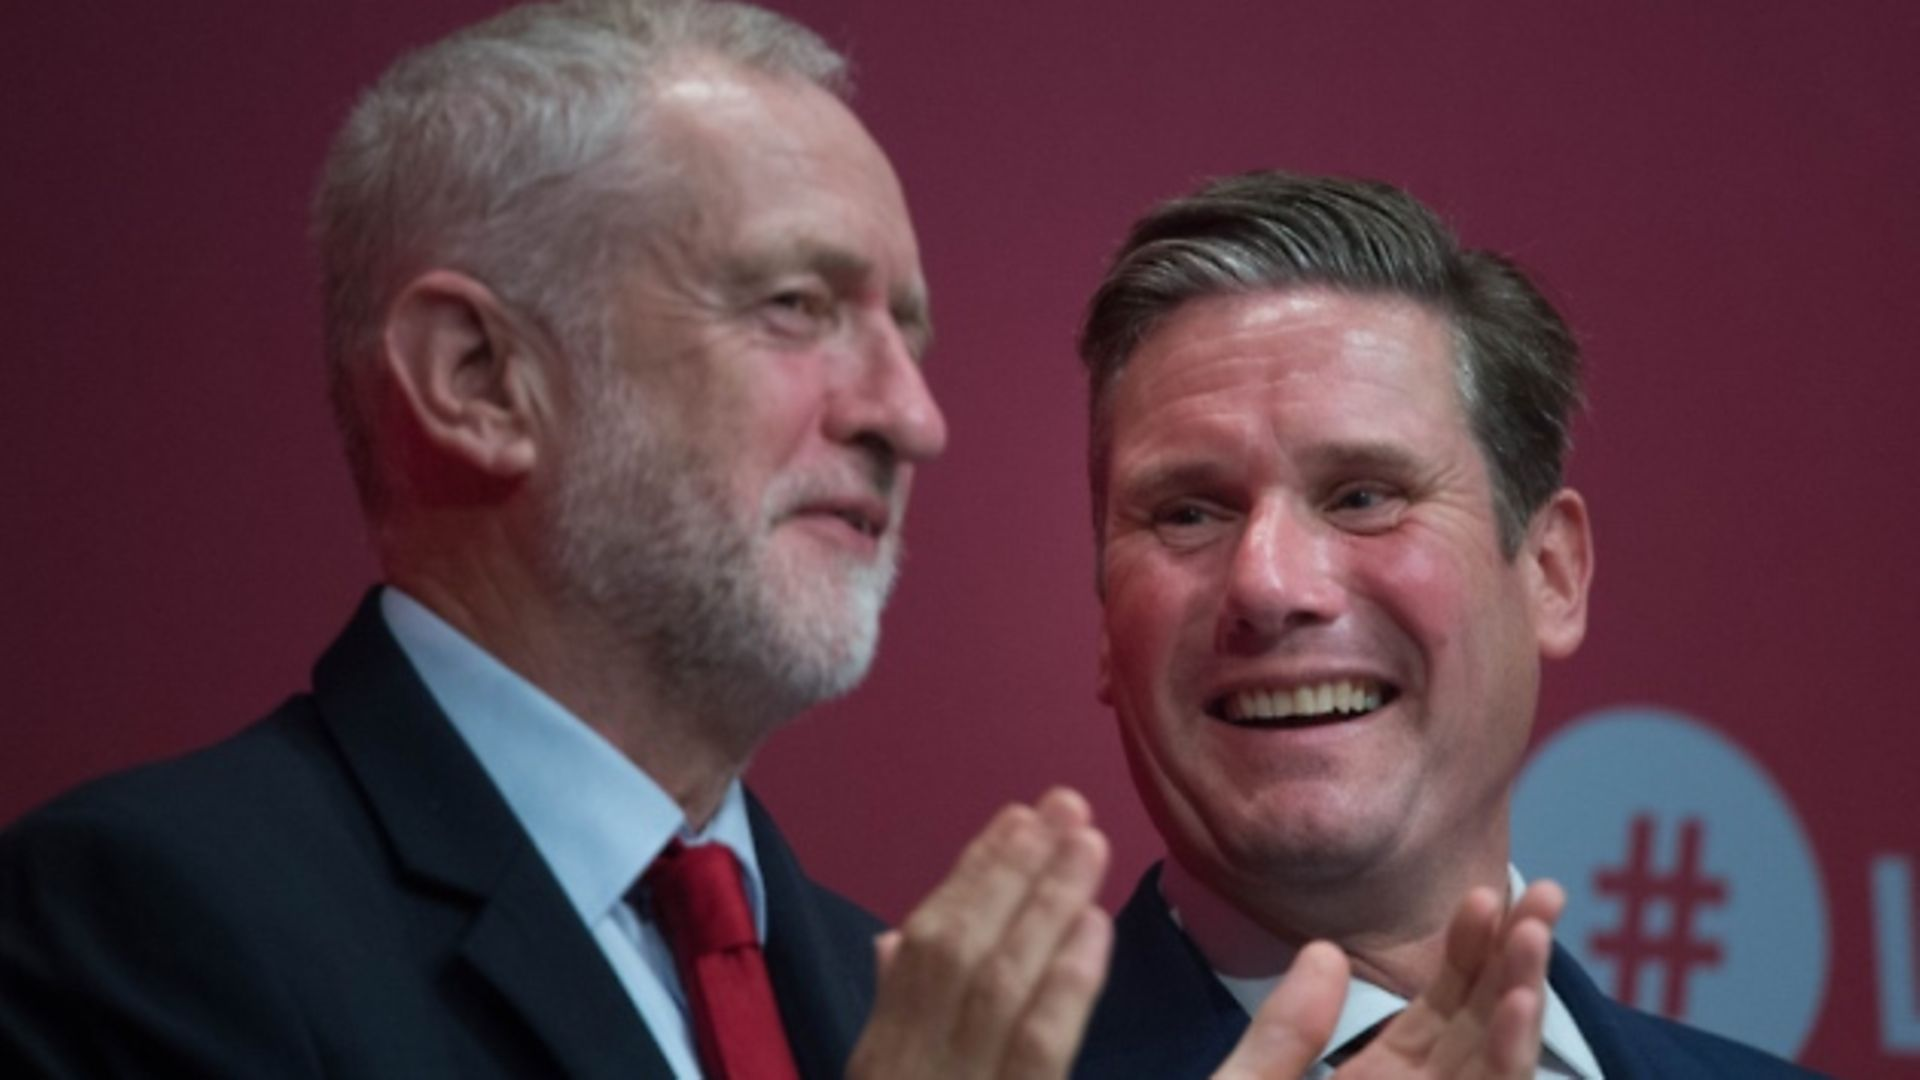 Jeremy Corbyn and Keir Starmer - Credit: PA